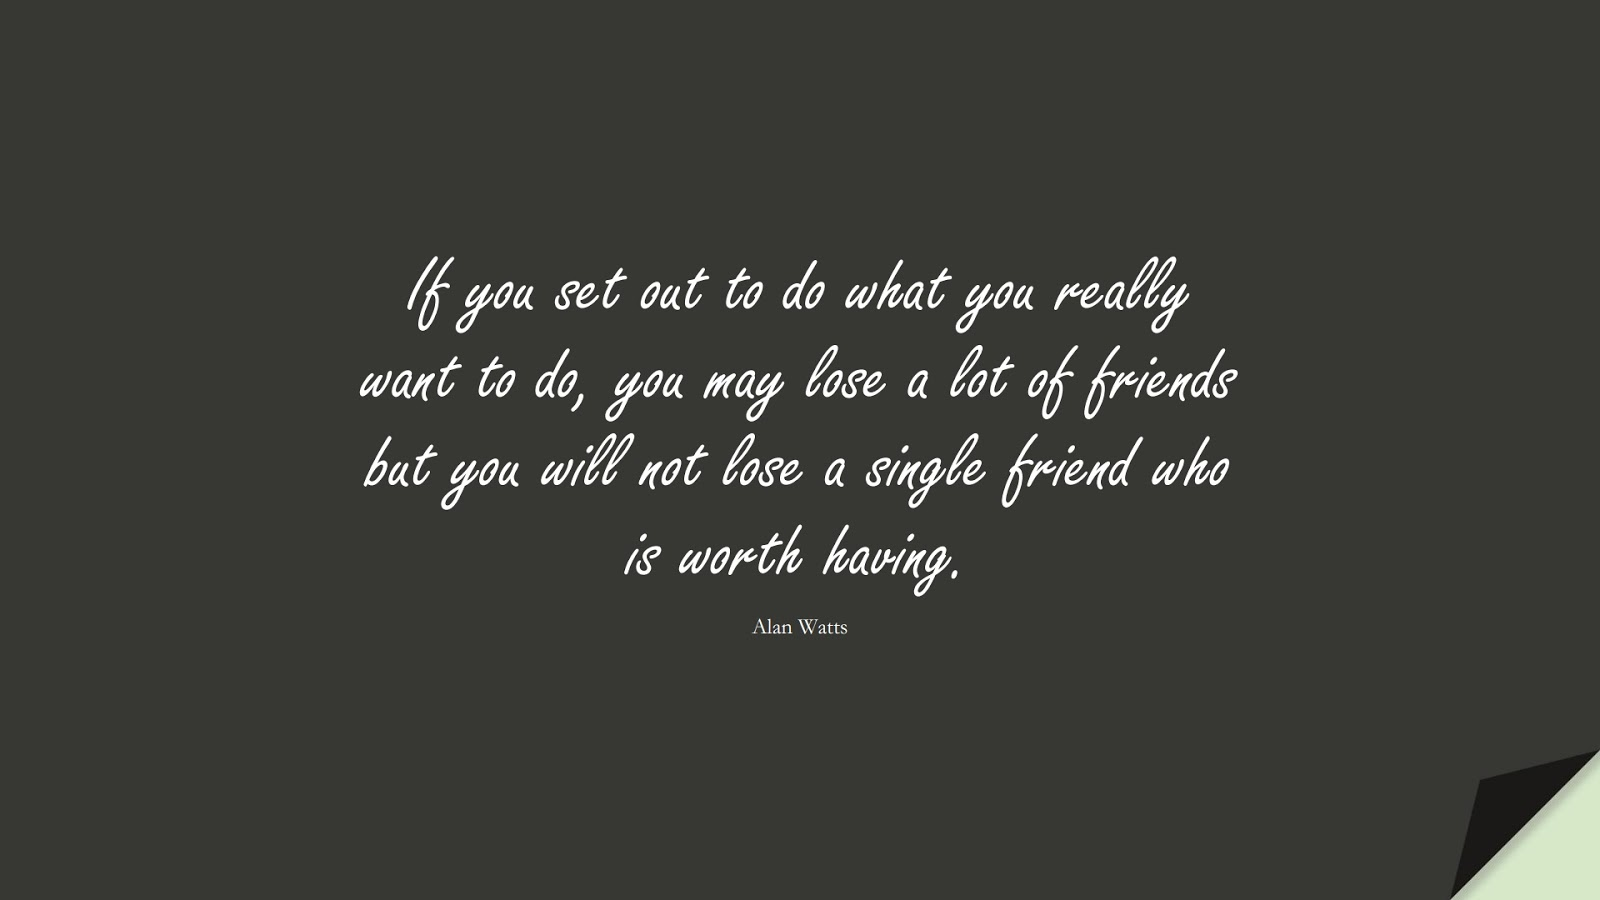 If you set out to do what you really want to do, you may lose a lot of friends but you will not lose a single friend who is worth having. (Alan Watts);  #FriendshipQuotes